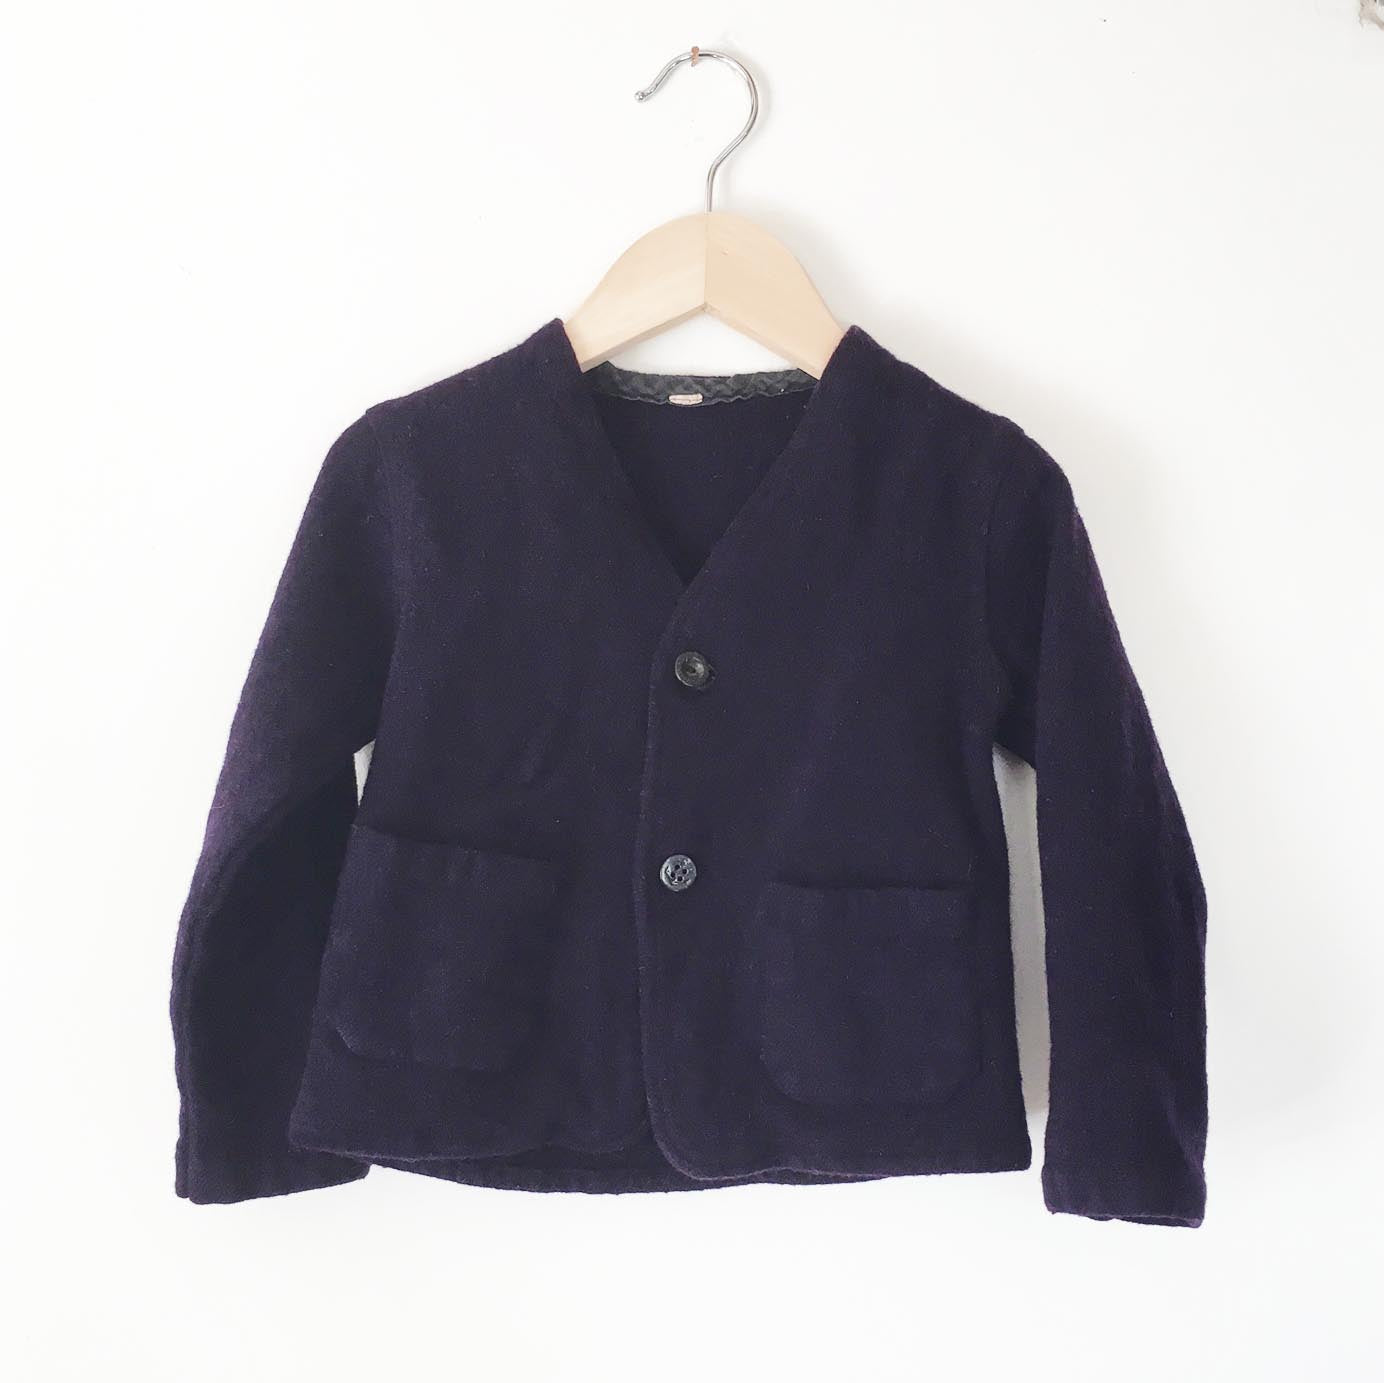 Indigo Boiled wool jacket size 12-18 months